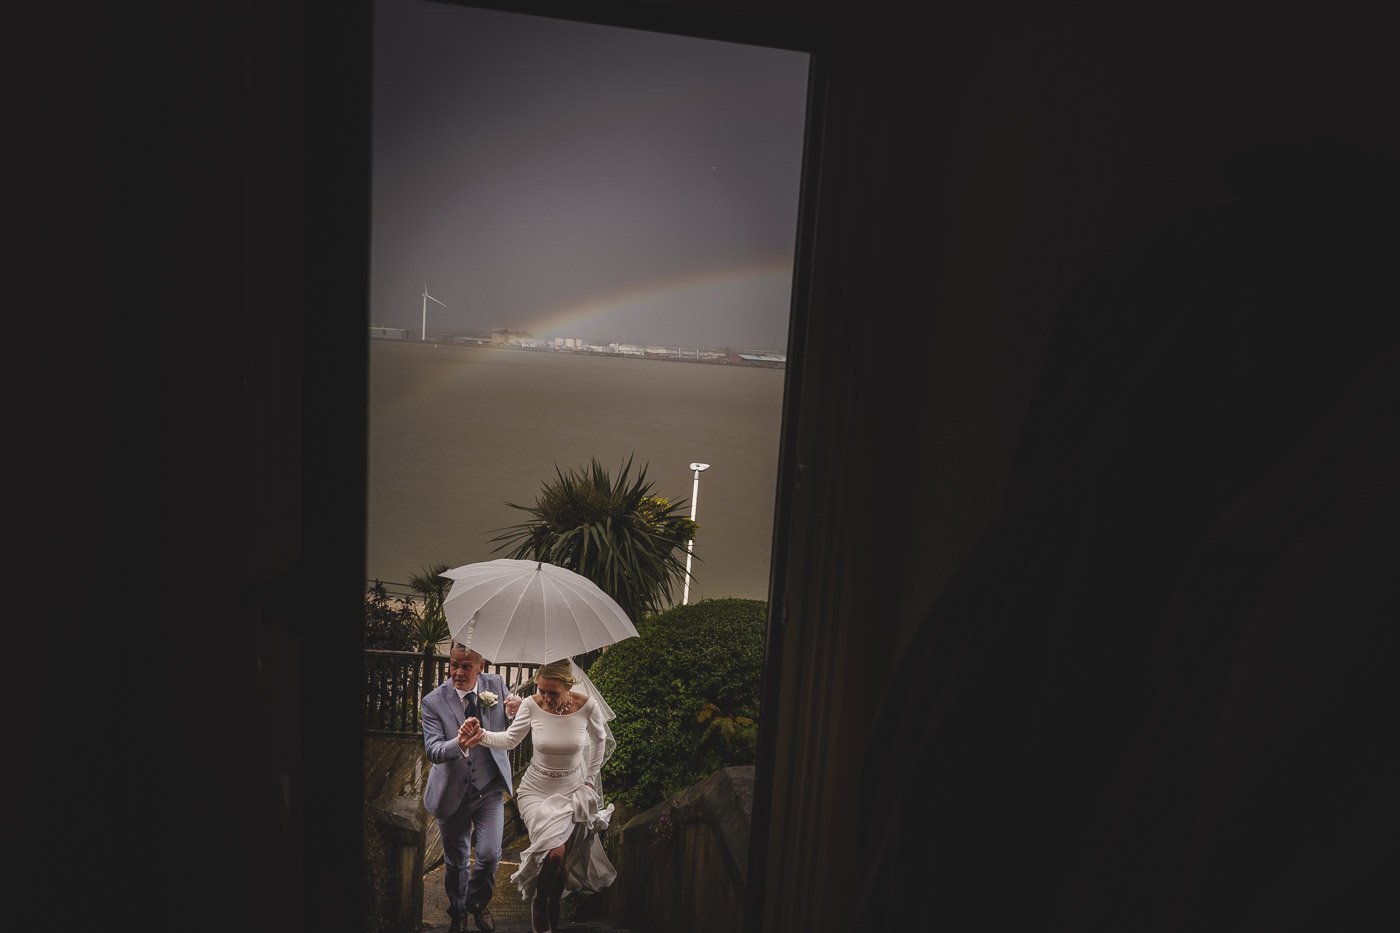 bride and groom returning home in a storm